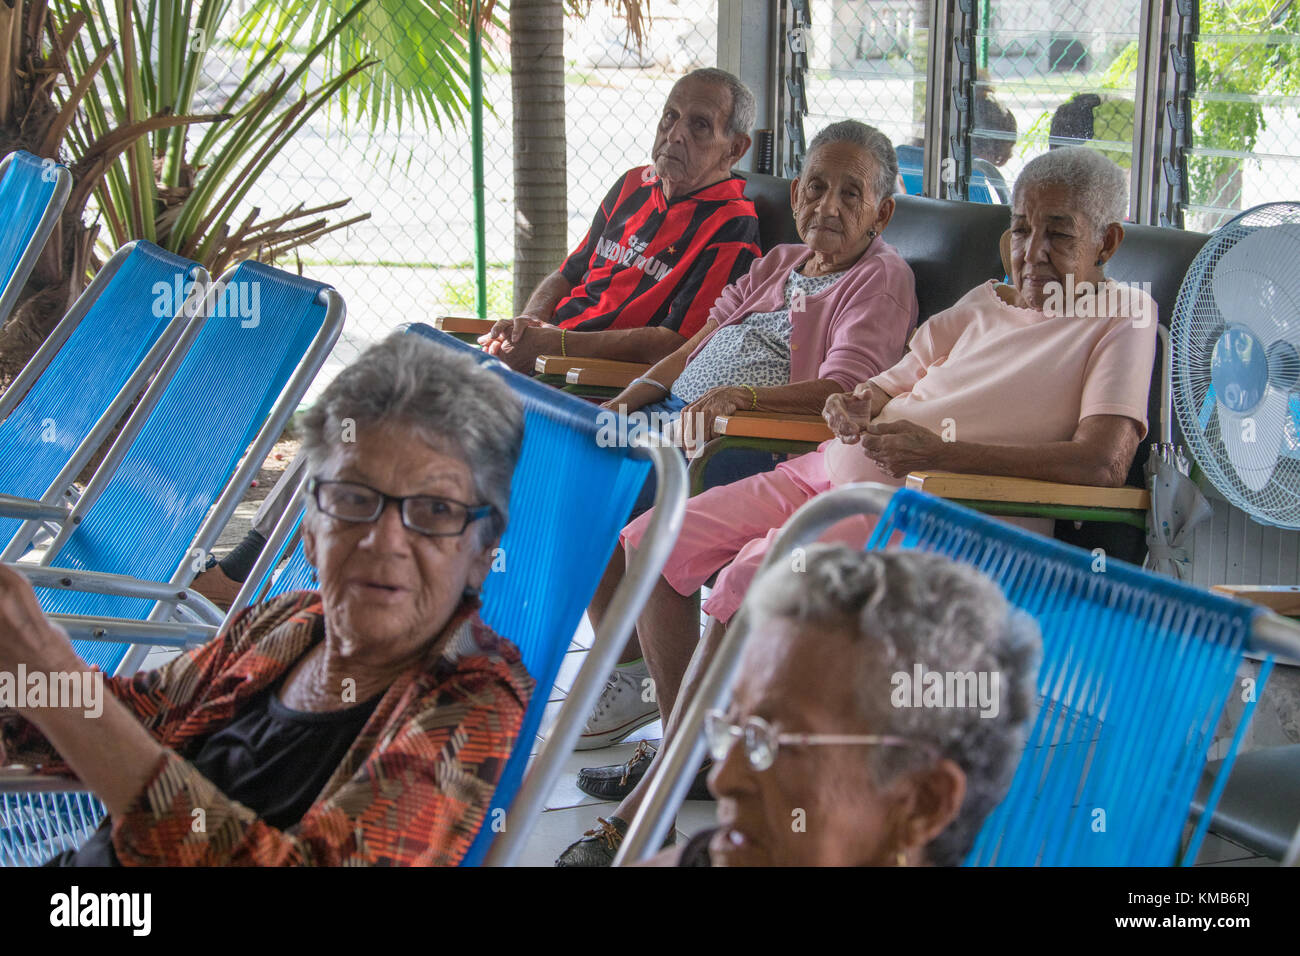 Cuban Women Relaxing At An Elderly Care Facility Or Nursing Home In